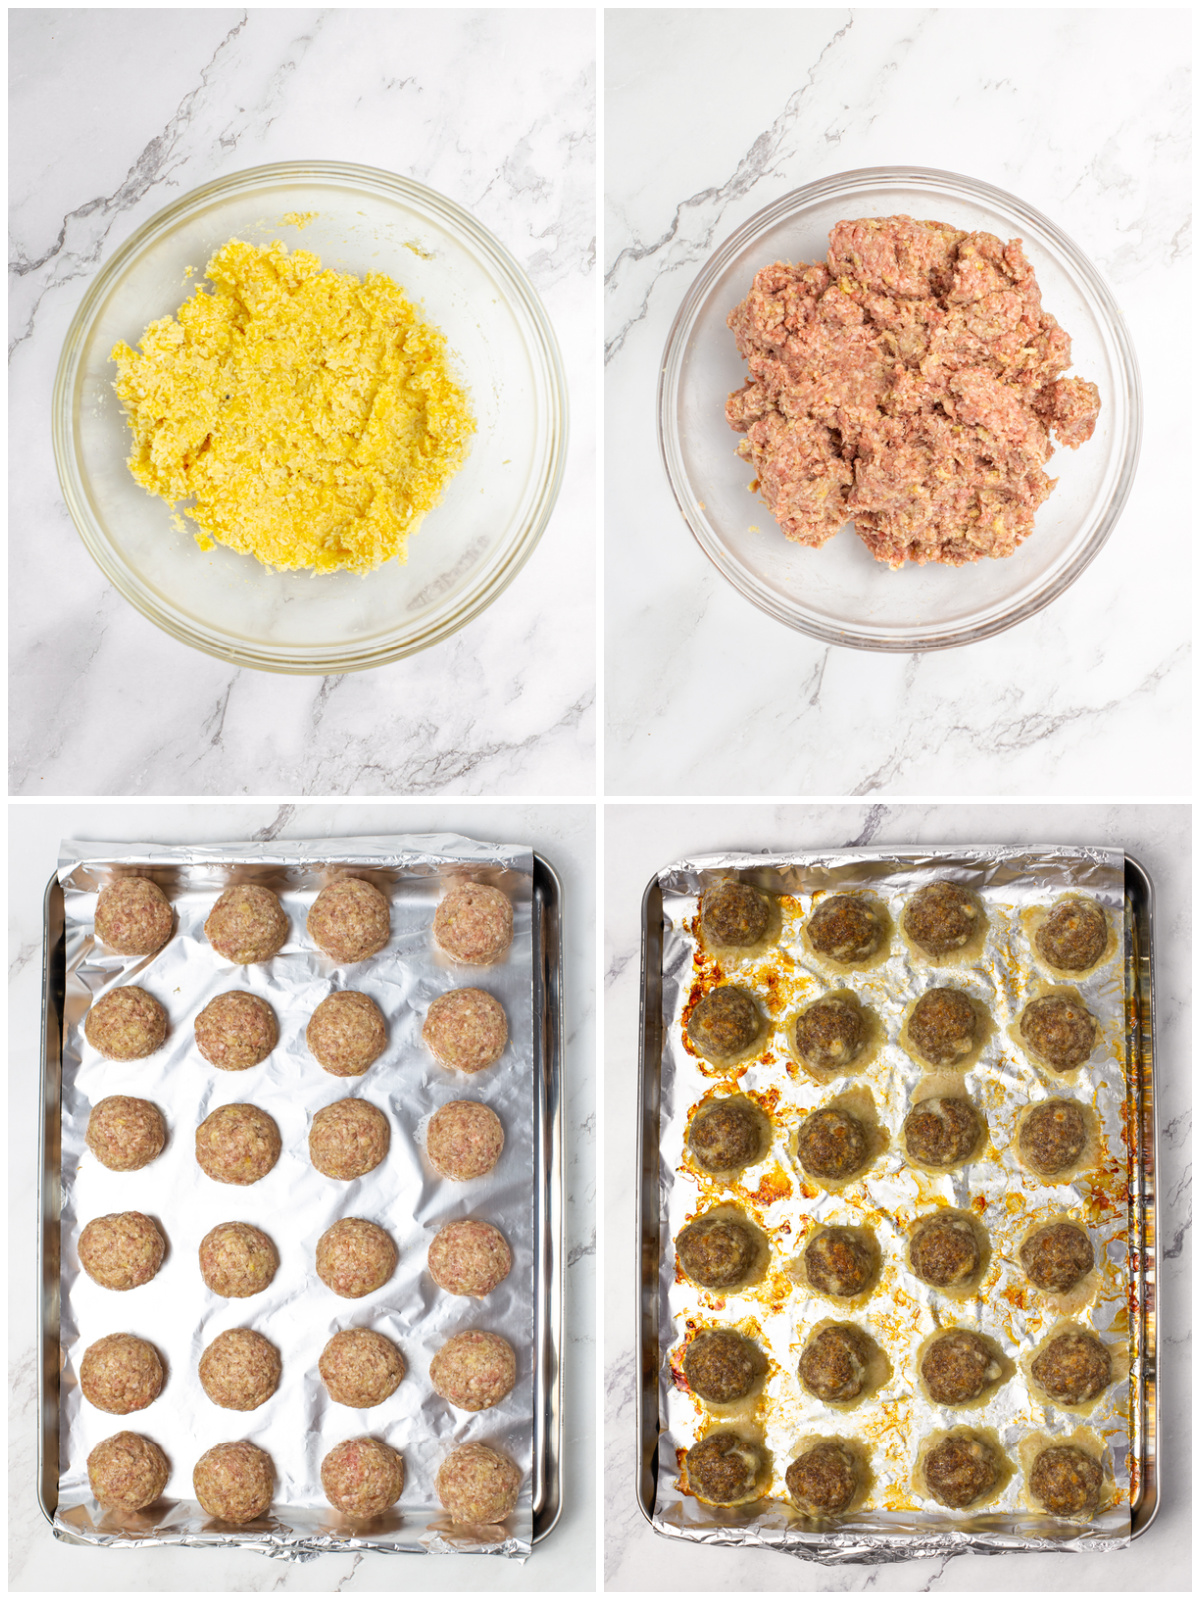 Step by step photos on how to make Homemade Meatballs